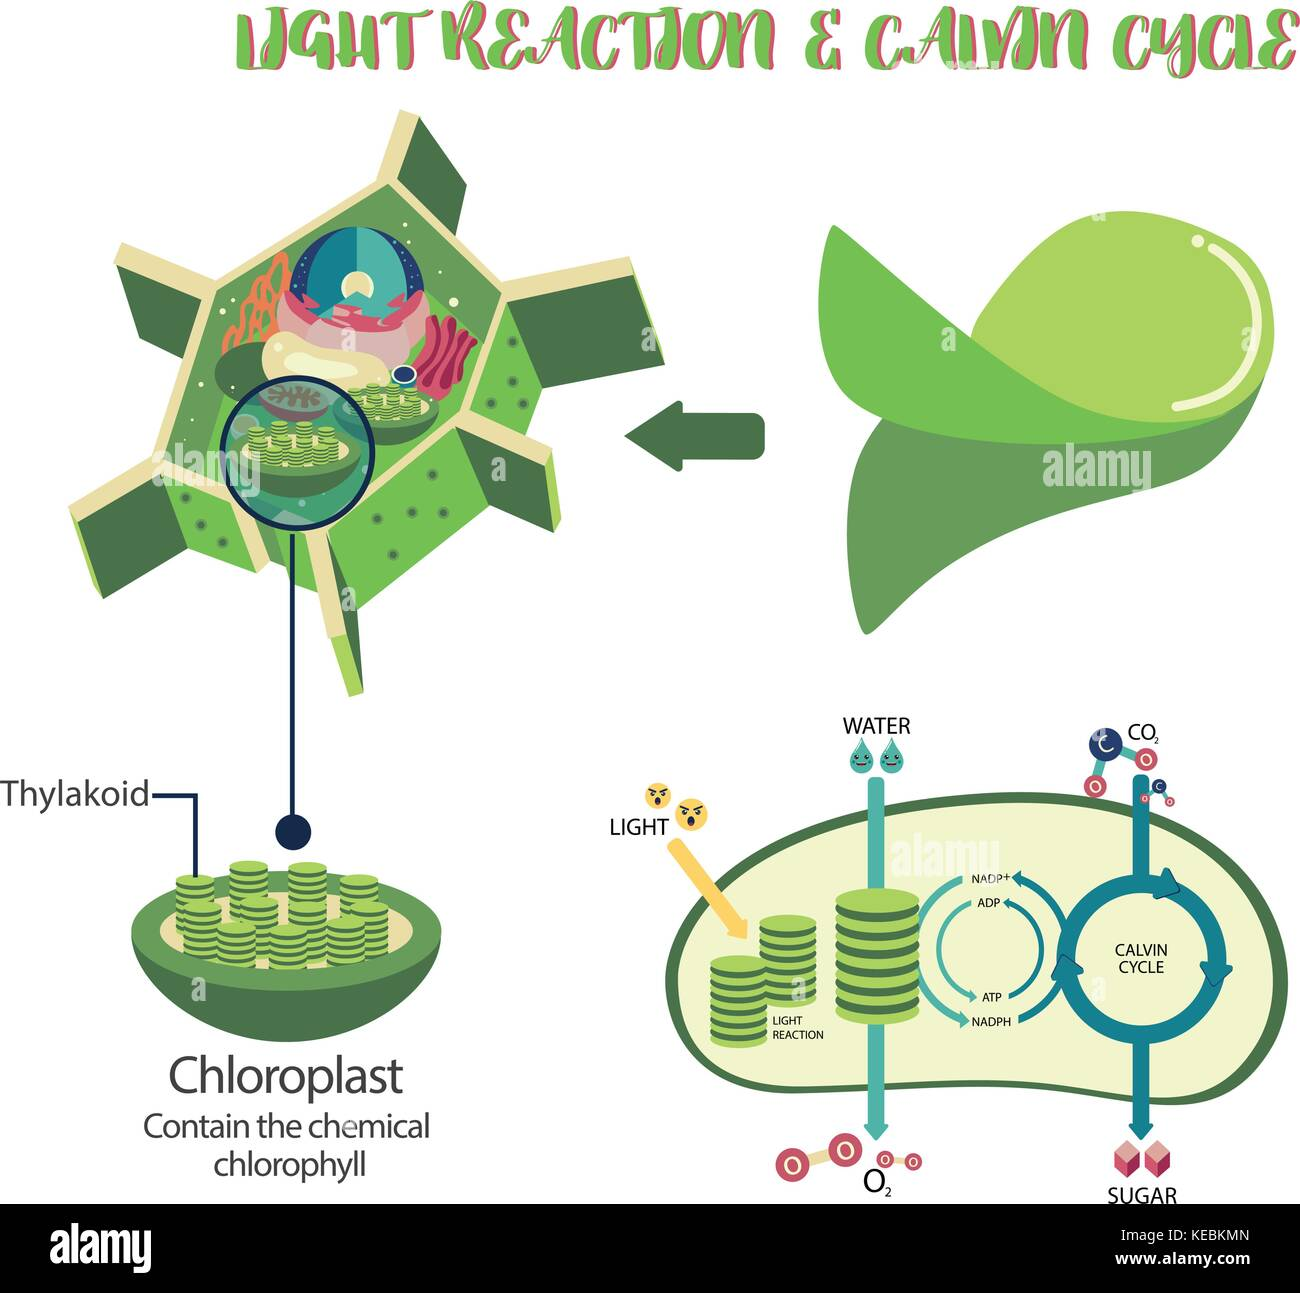 Photosynthesis plant cell diagram illustration vector design stock photosynthesis plant cell diagram illustration vector design ccuart Gallery